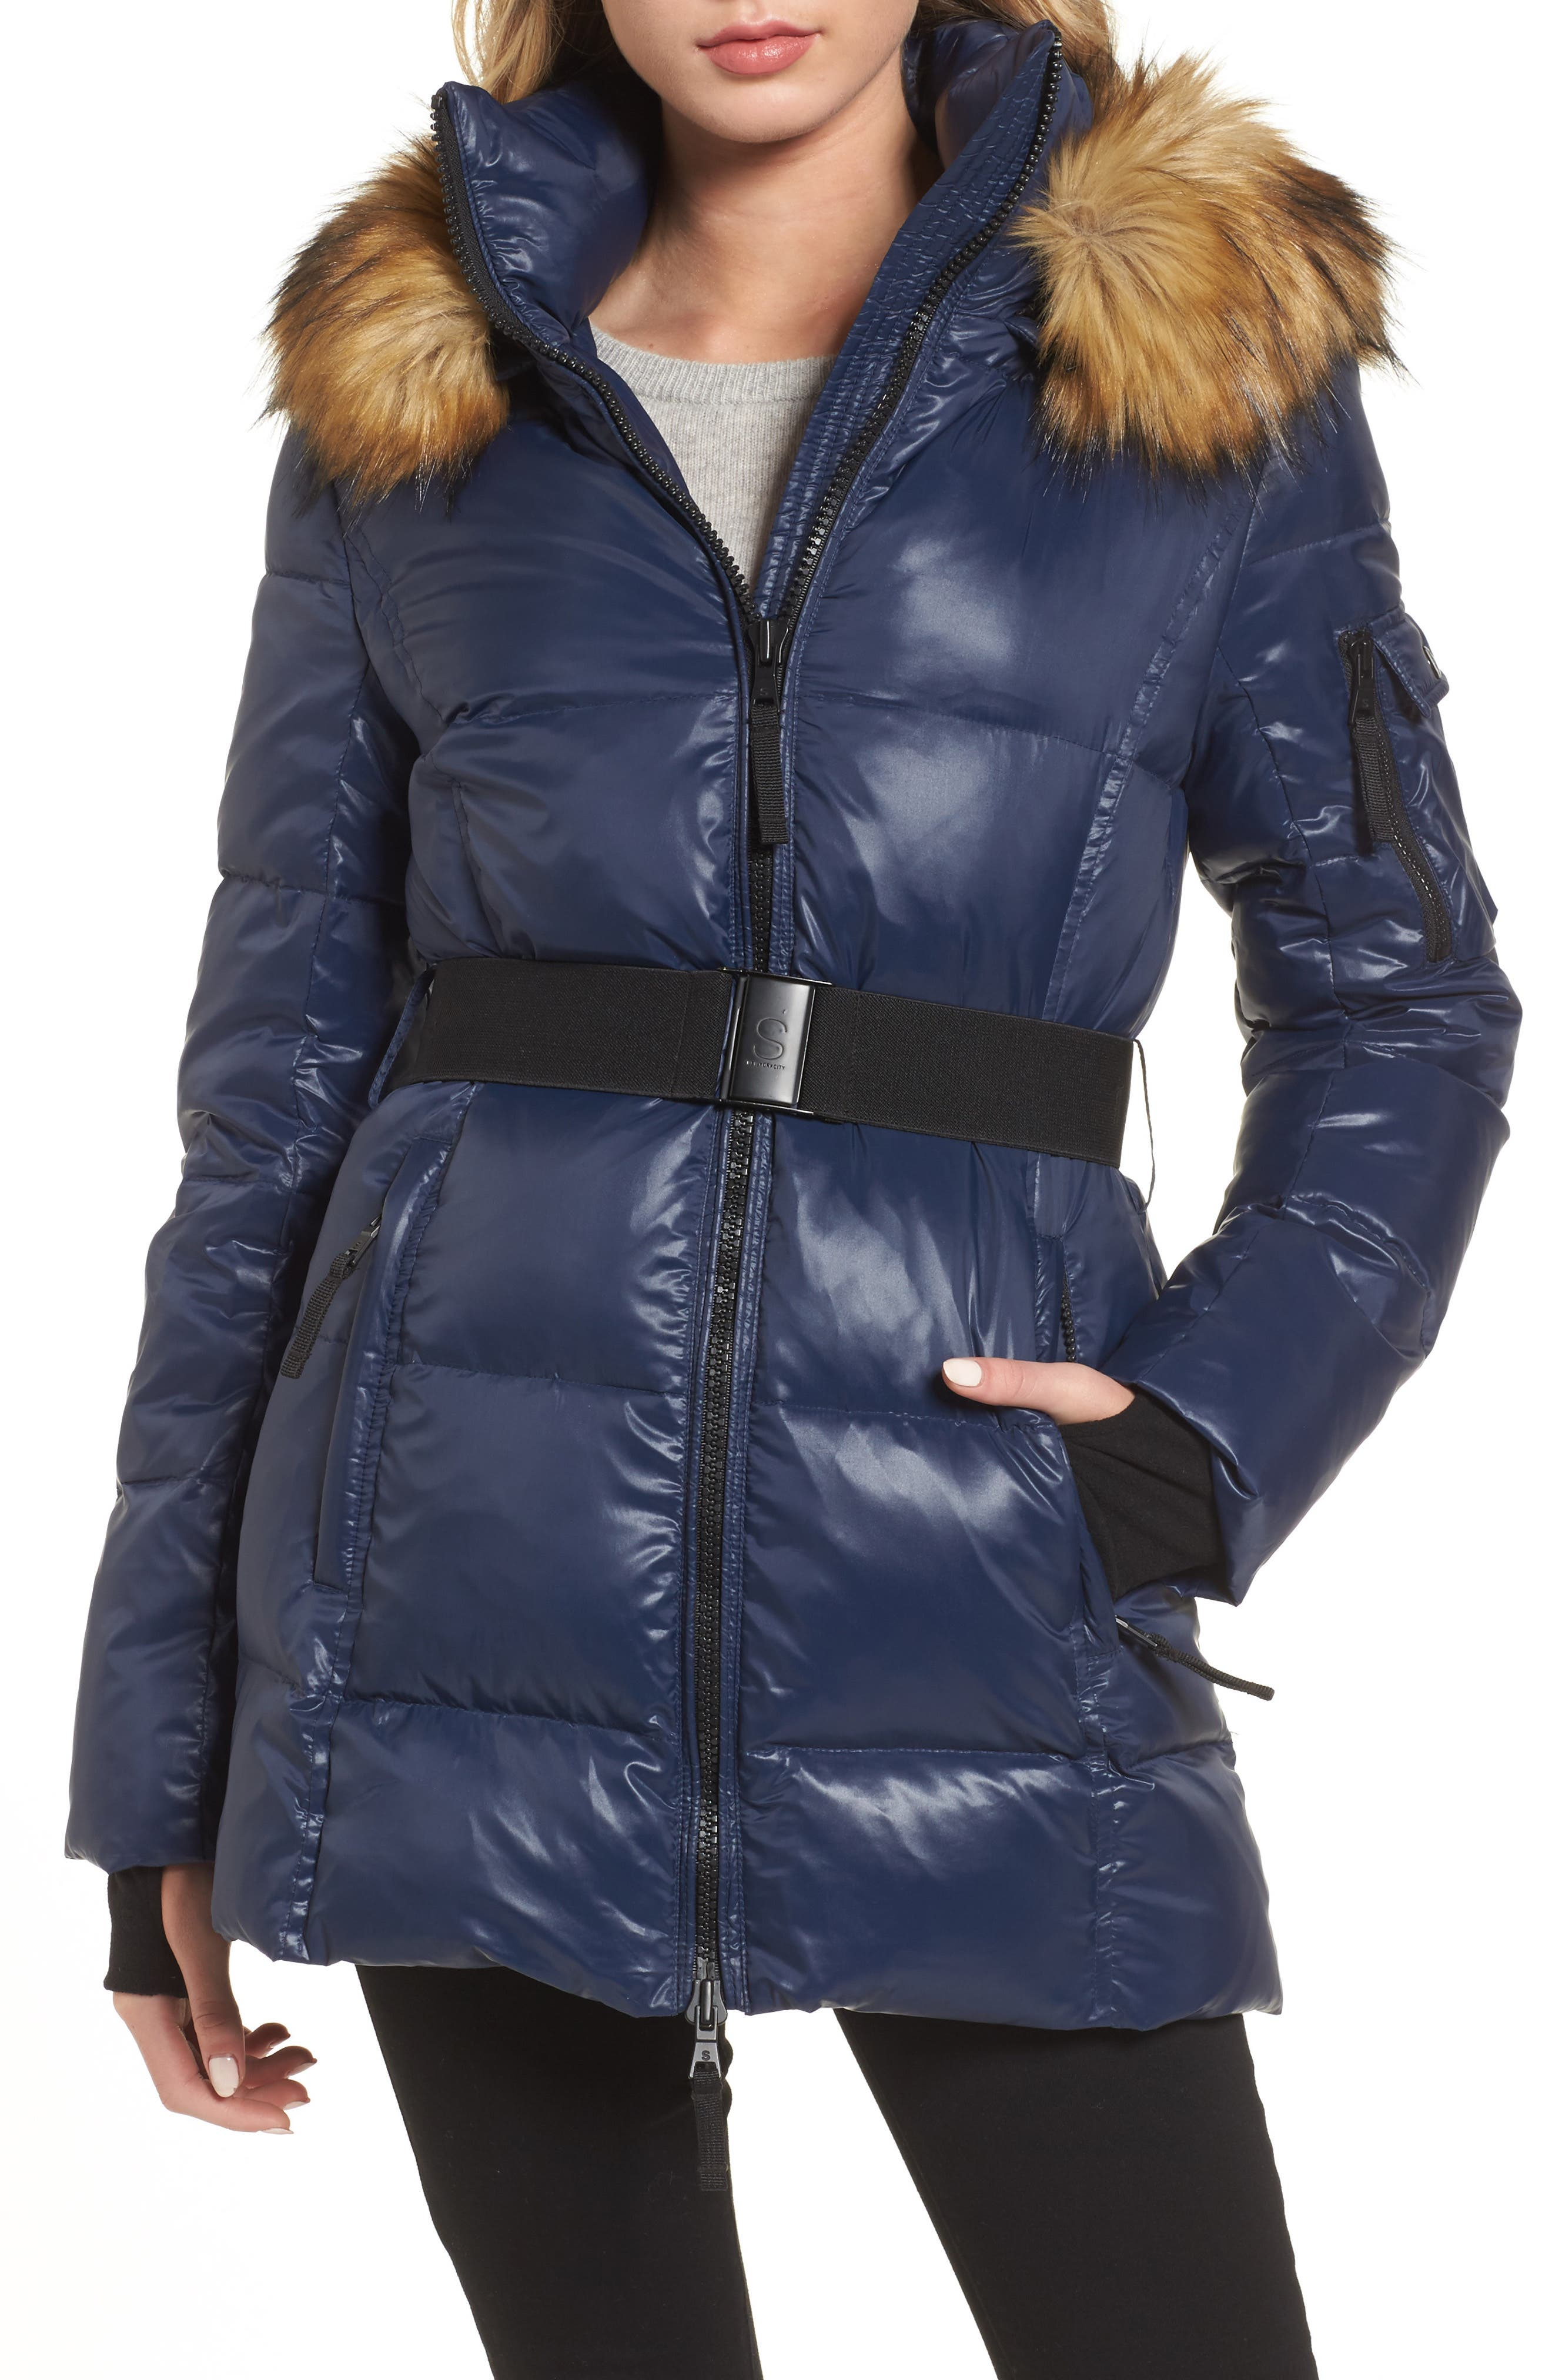 S13 'Nicky' Quilted Coat with Removable Faux Fur Trimmed Hood